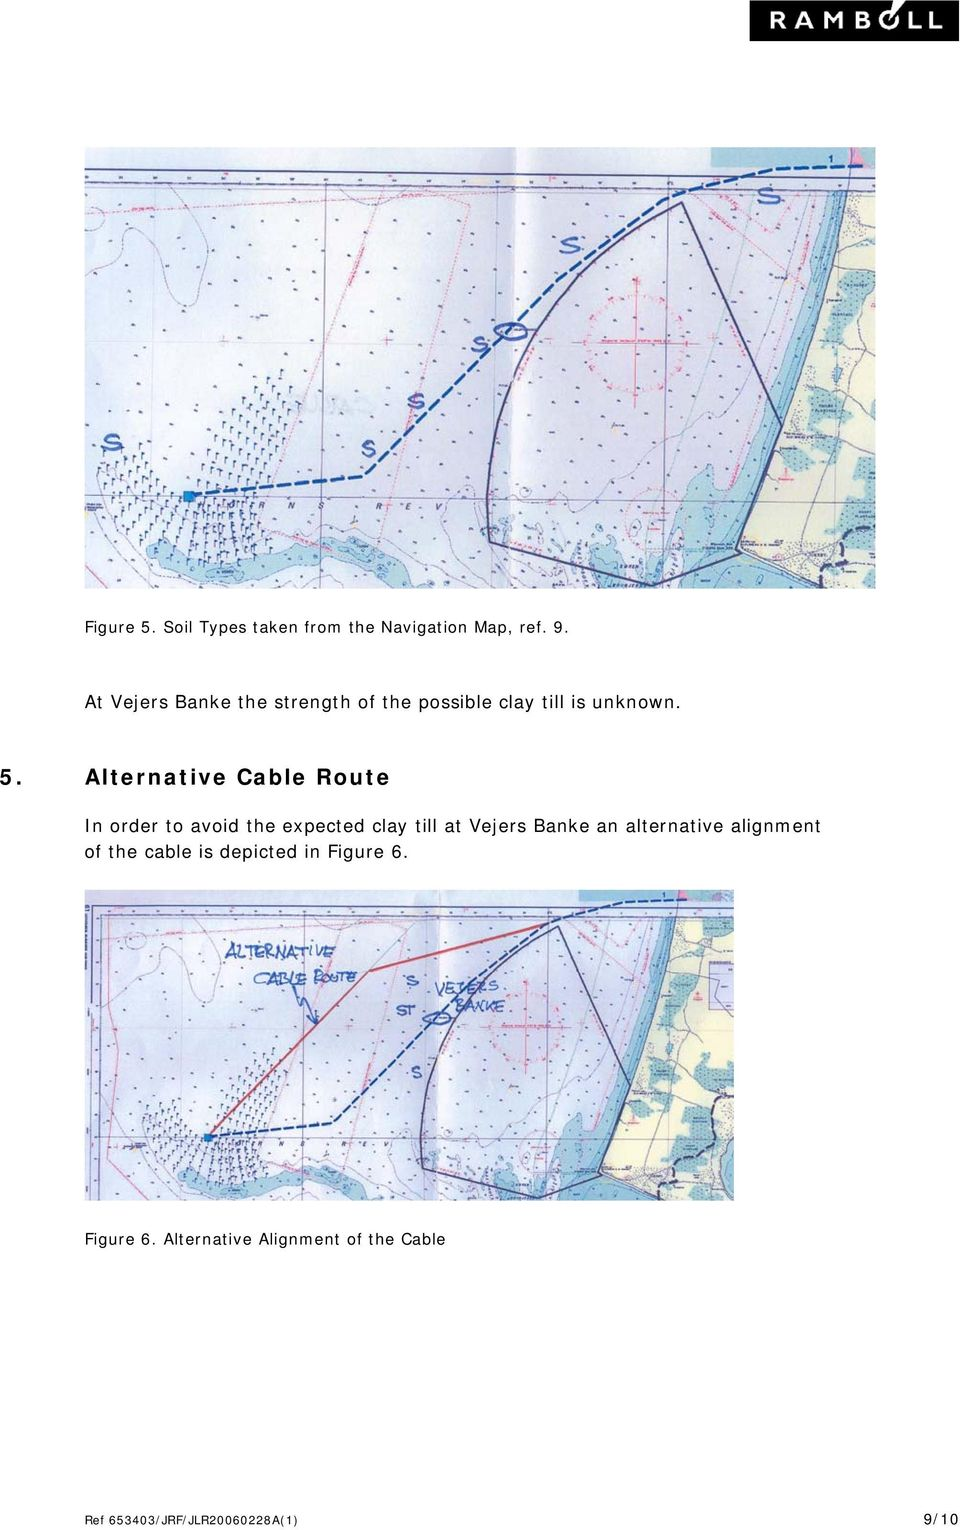 Alternative Cable Route In order to avoid the expected clay till at Vejers Banke an